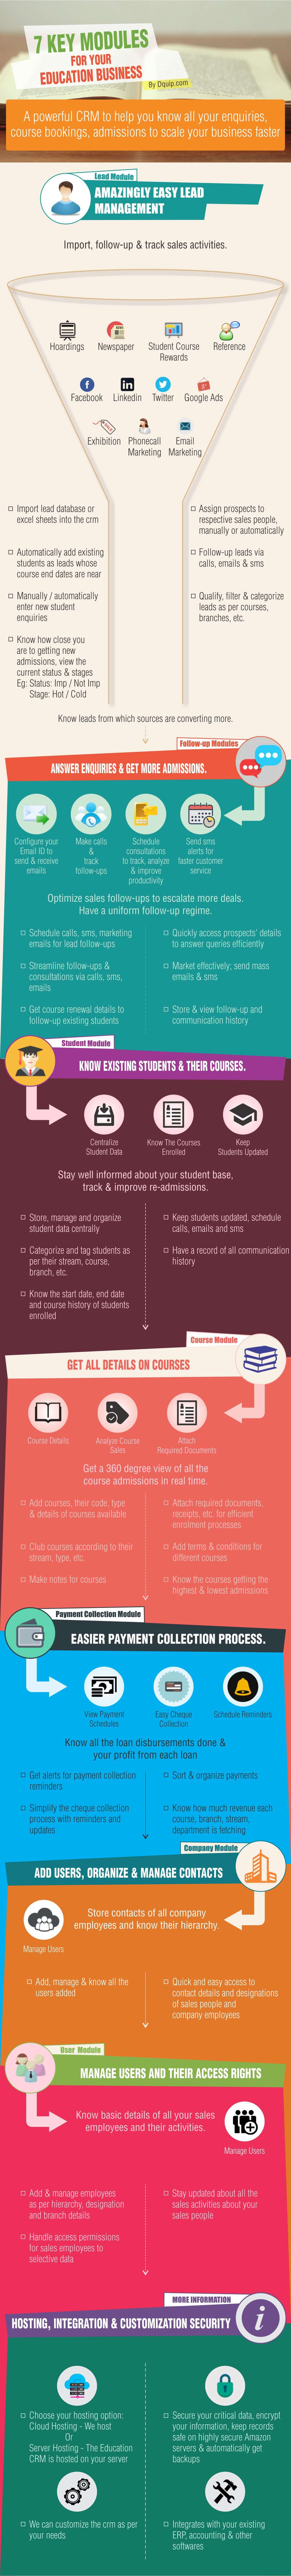 infographic on Education crm with a business flow